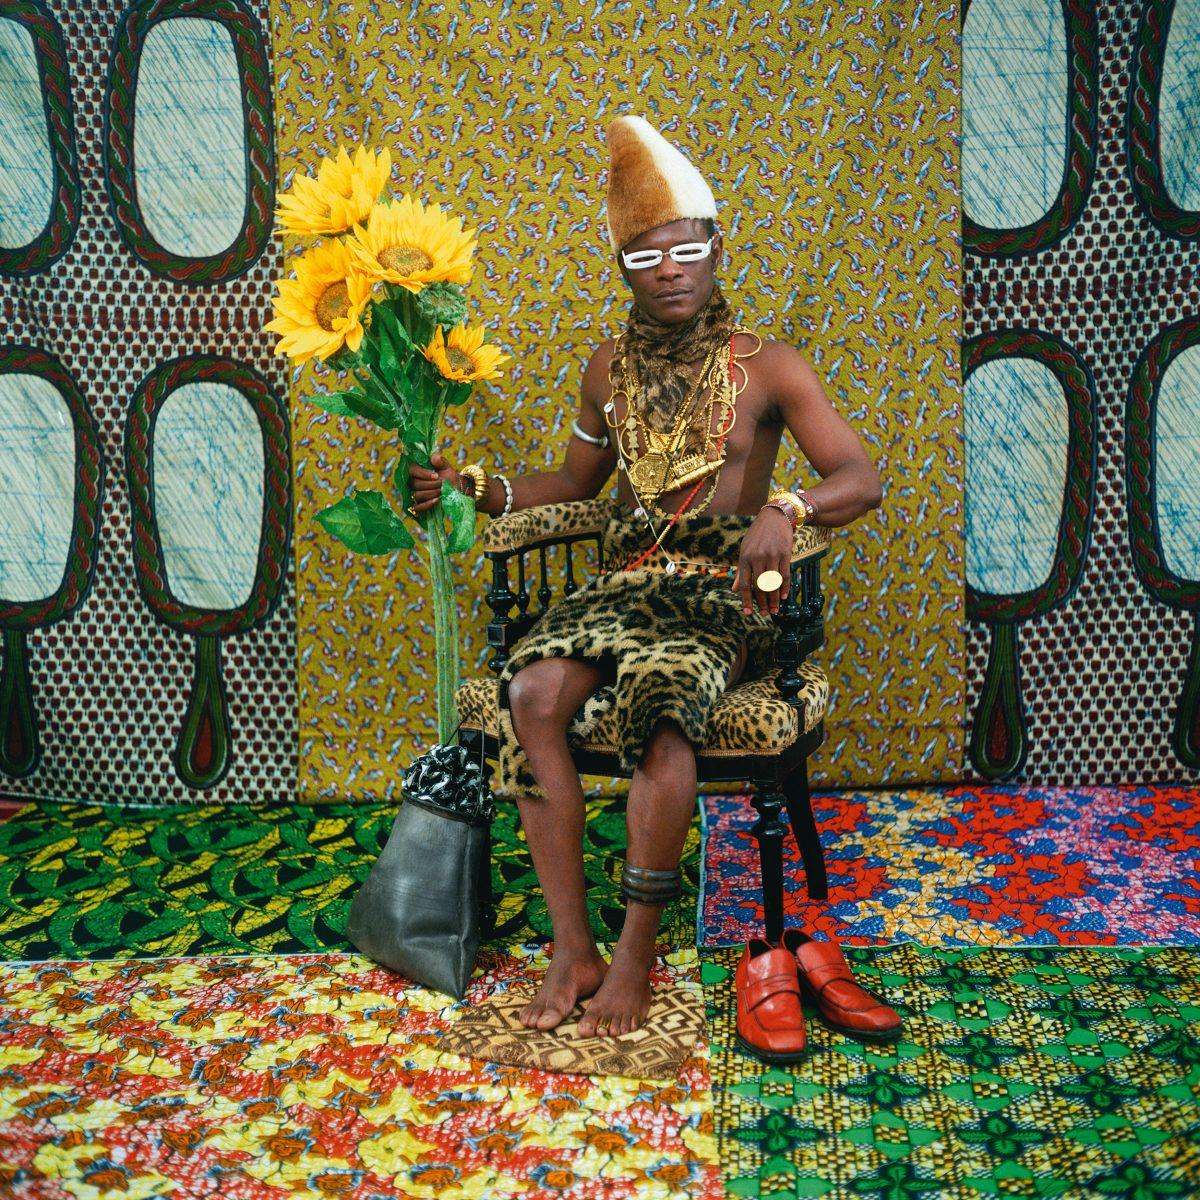 Color photo by Samuel Fosso, self portrait as 'African chief'. From the series Tati, 1997